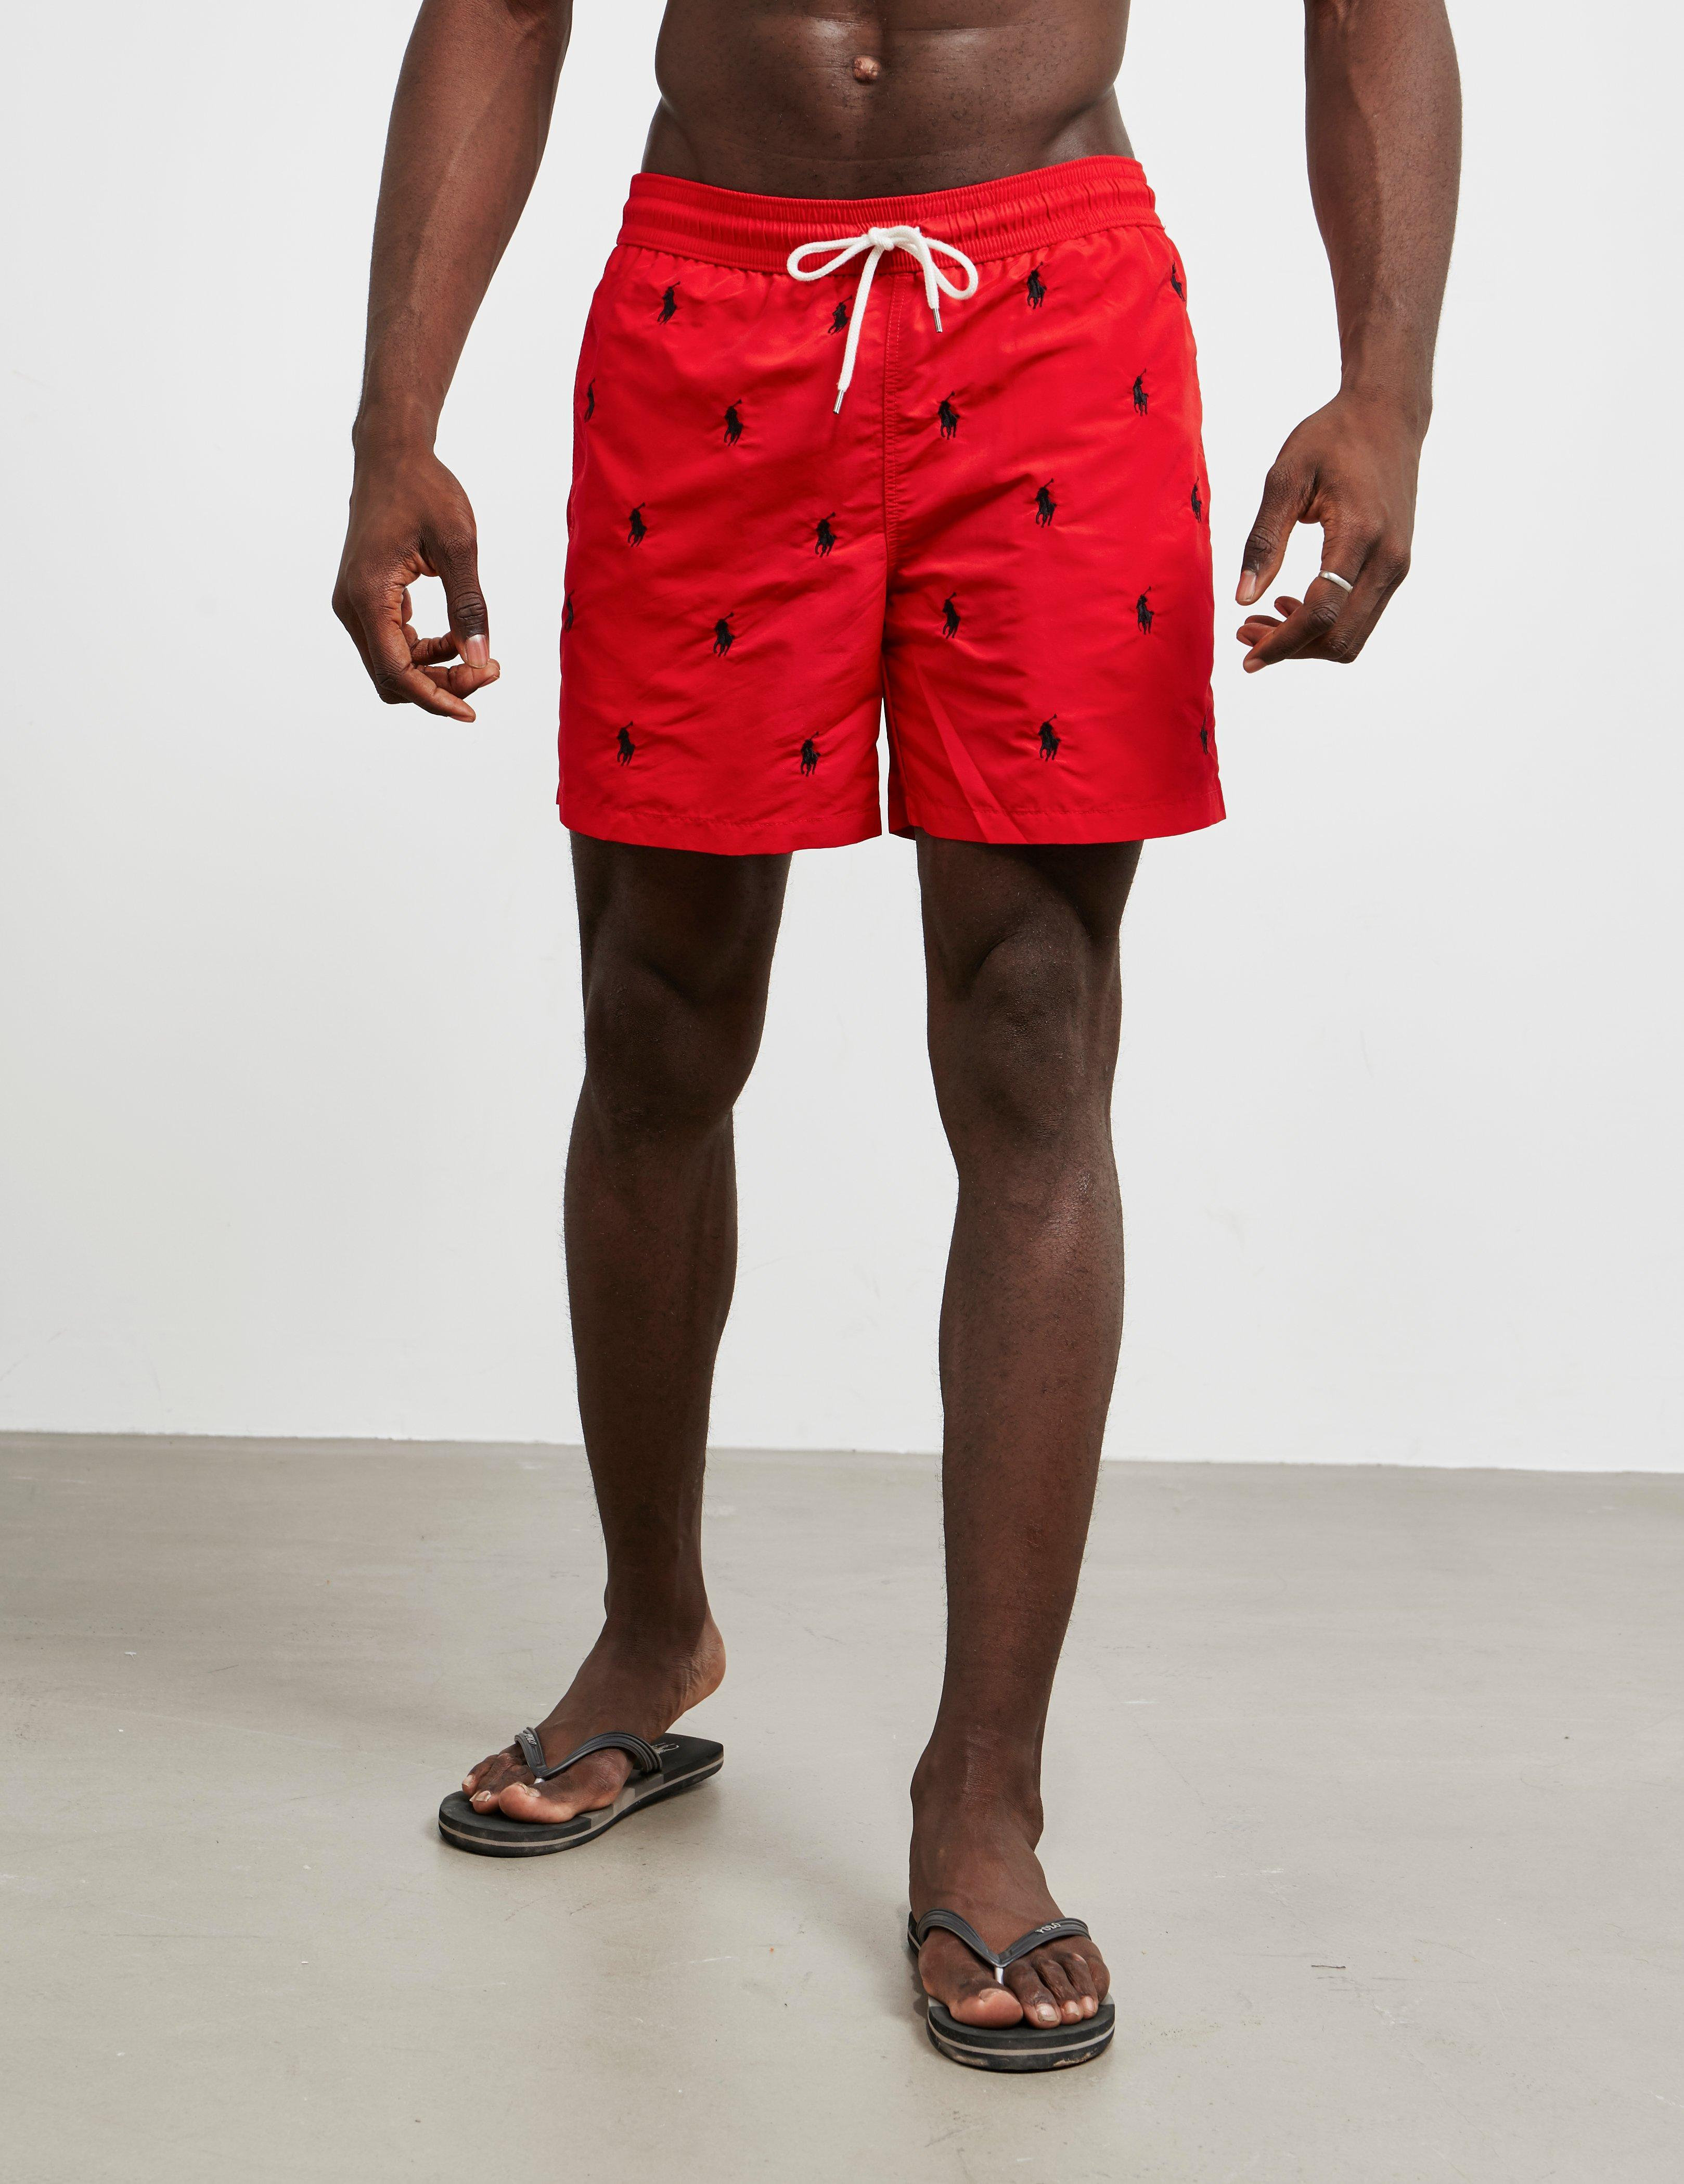 37307bf32f Lyst - Polo Ralph Lauren All Over Print Swim Shorts Red in Red for Men